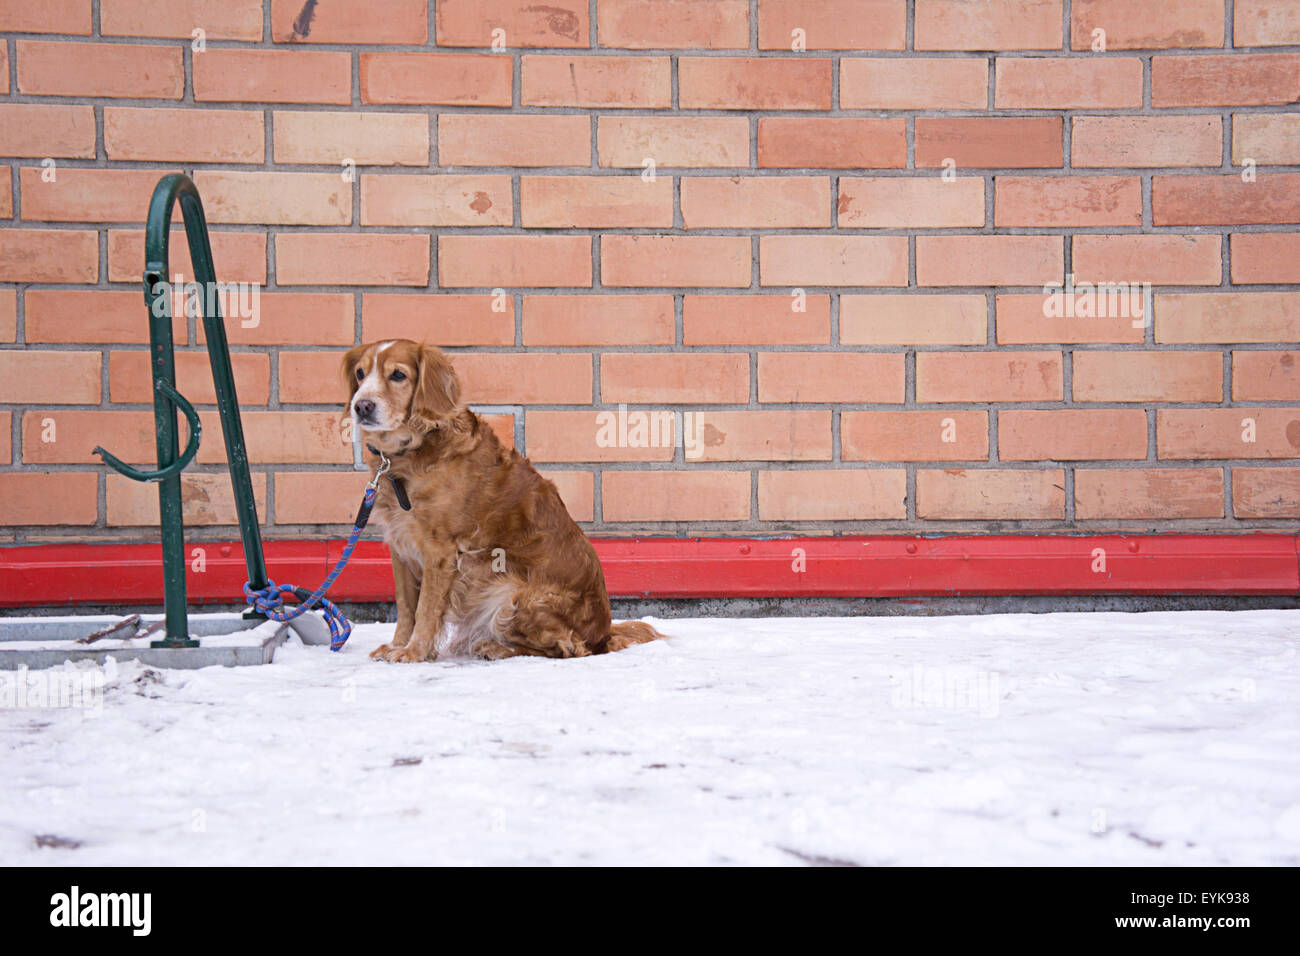 dog waiting for owner, tied to a bicycle parking rack - Stock Image